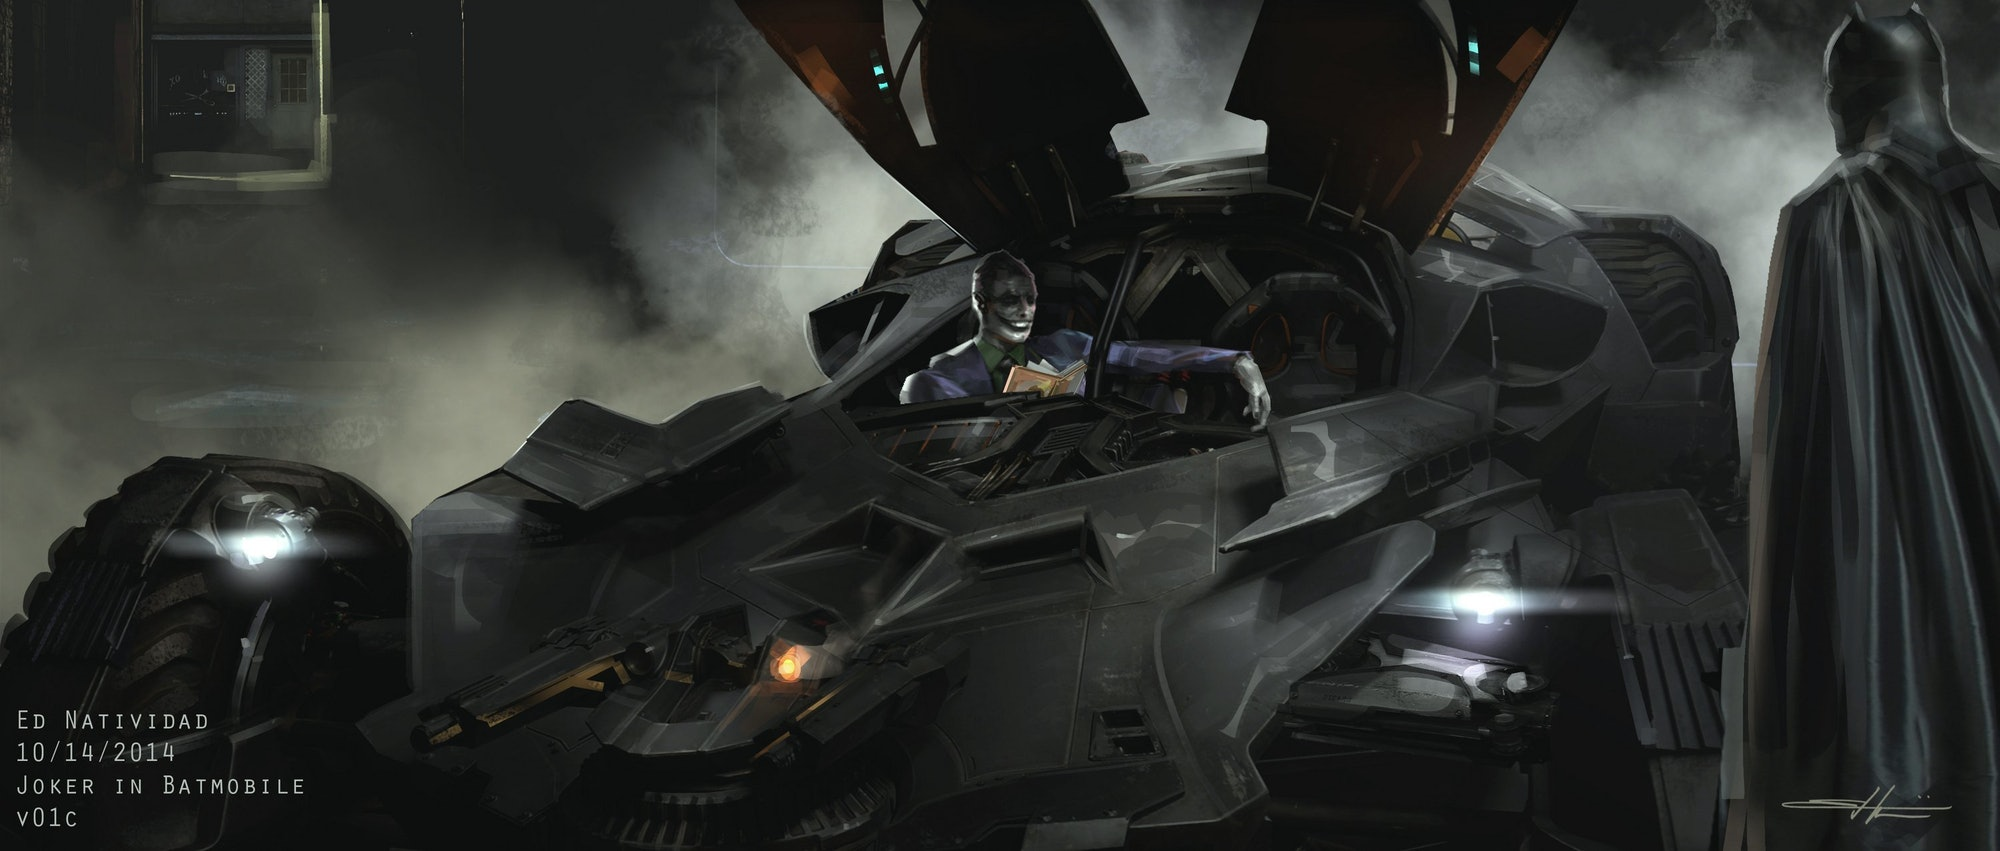 Ed Natividad Concept art for DC's 'Suicide Squad' with Batman and Joker.